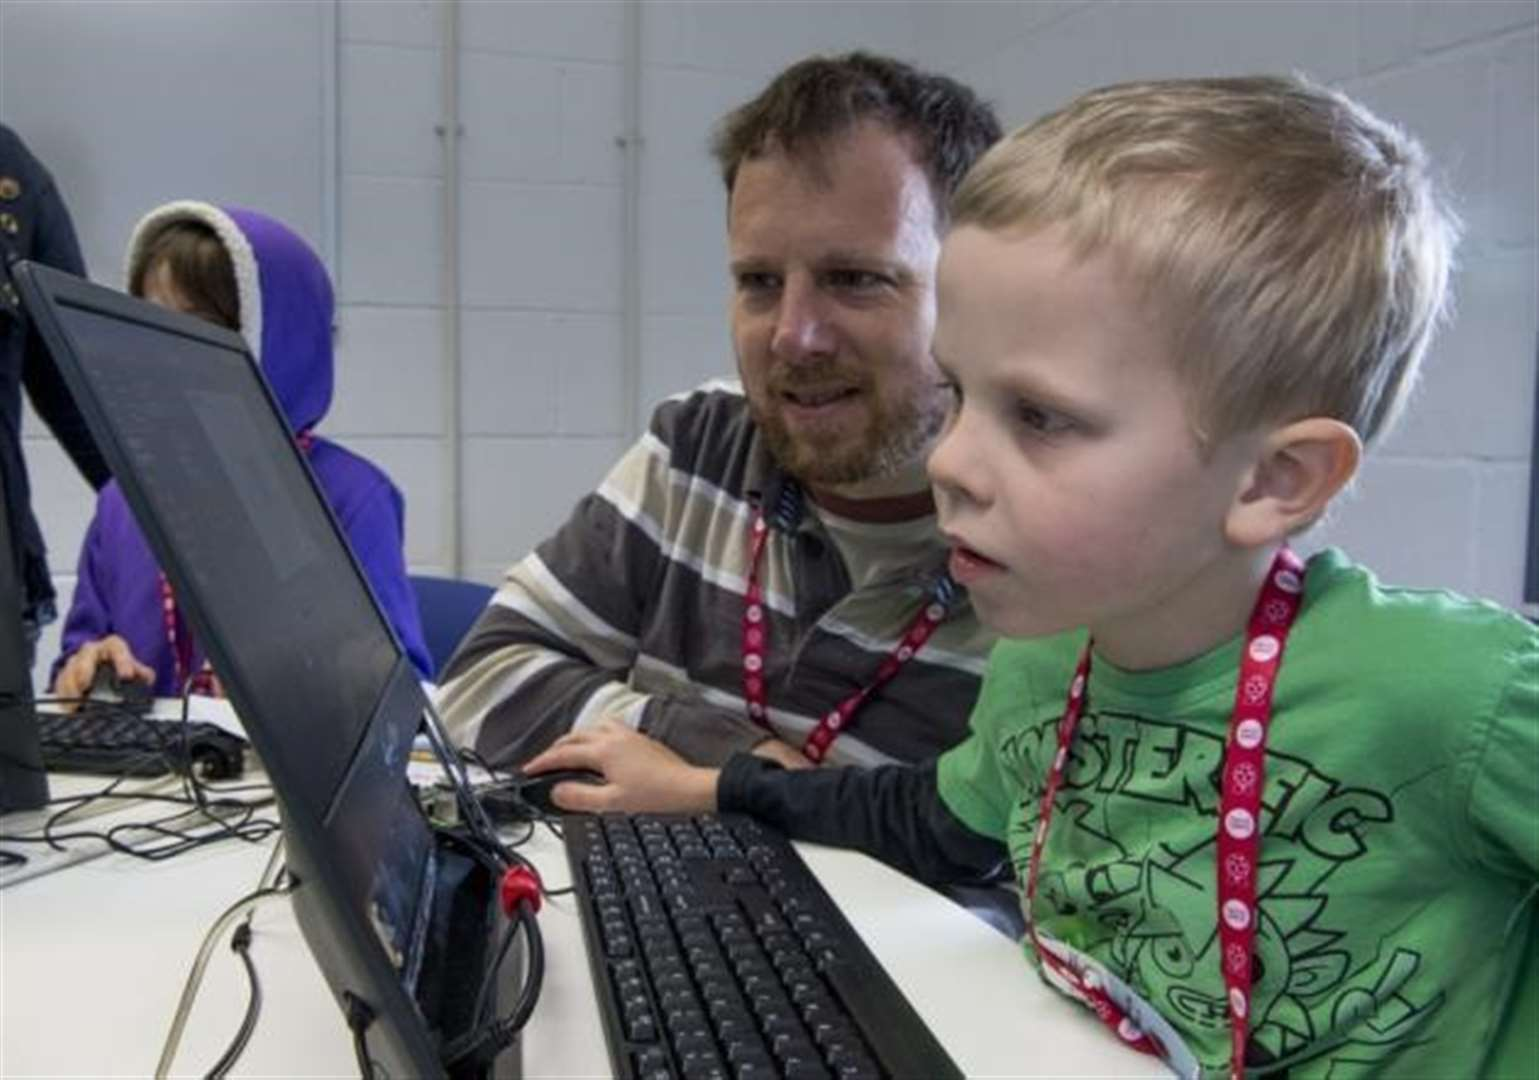 Raspberry Pi Foundation helps set up £84m National Centre for Computing Education